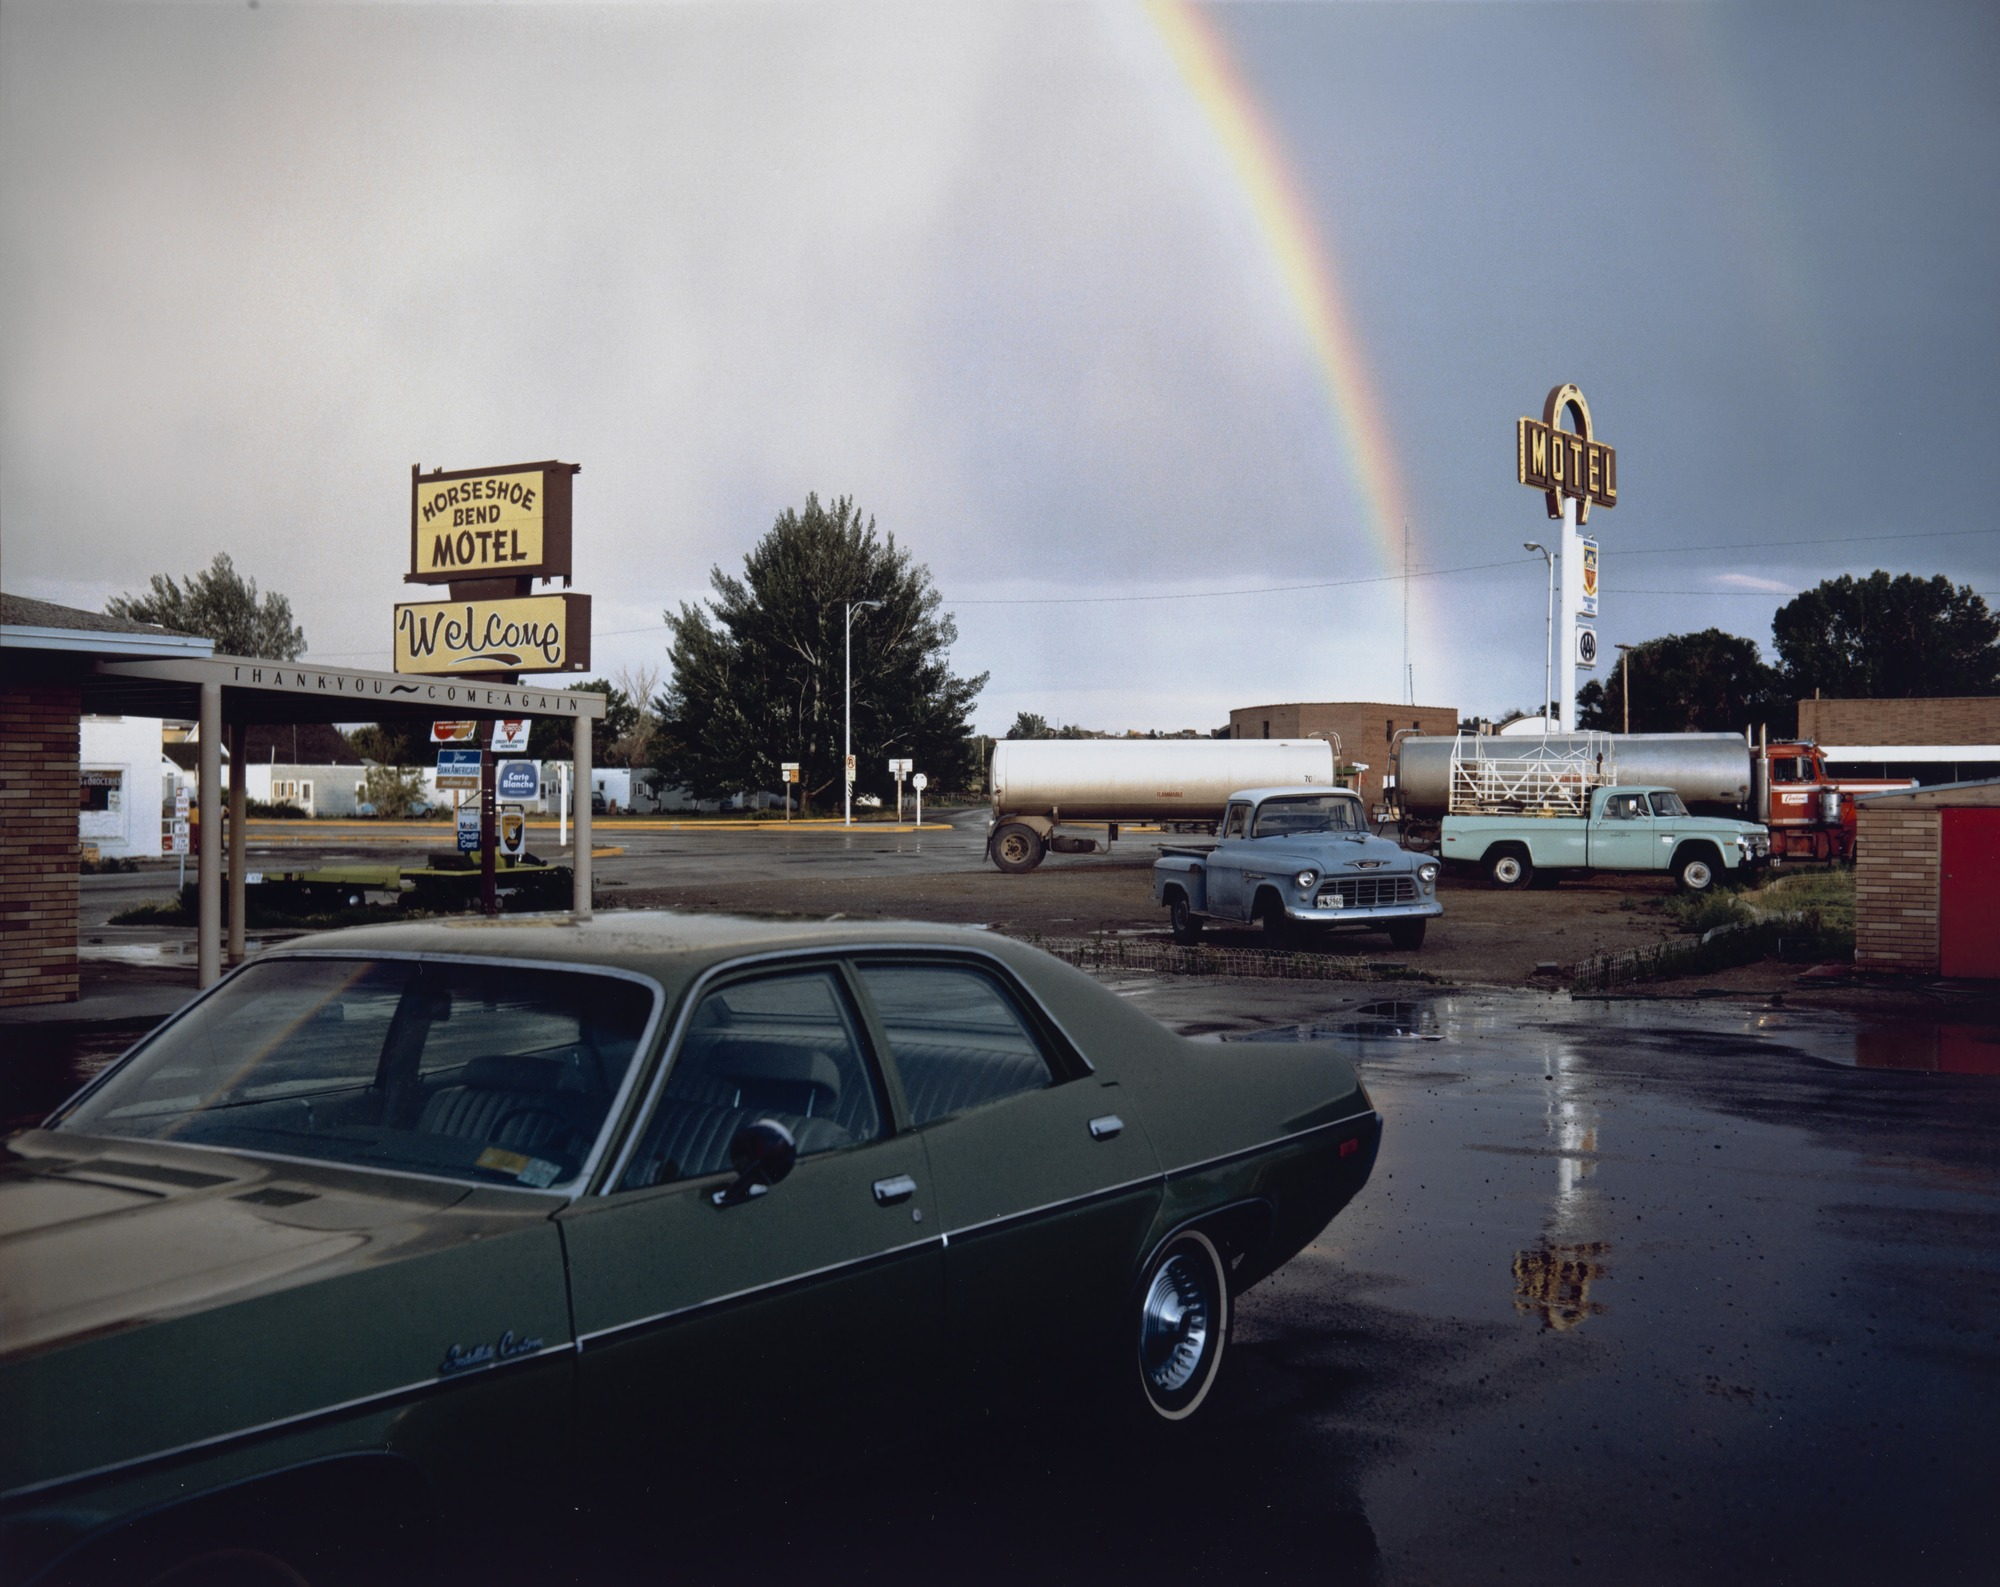 StephenShore-HorseshoeBendMotel-LovellWyoming1973